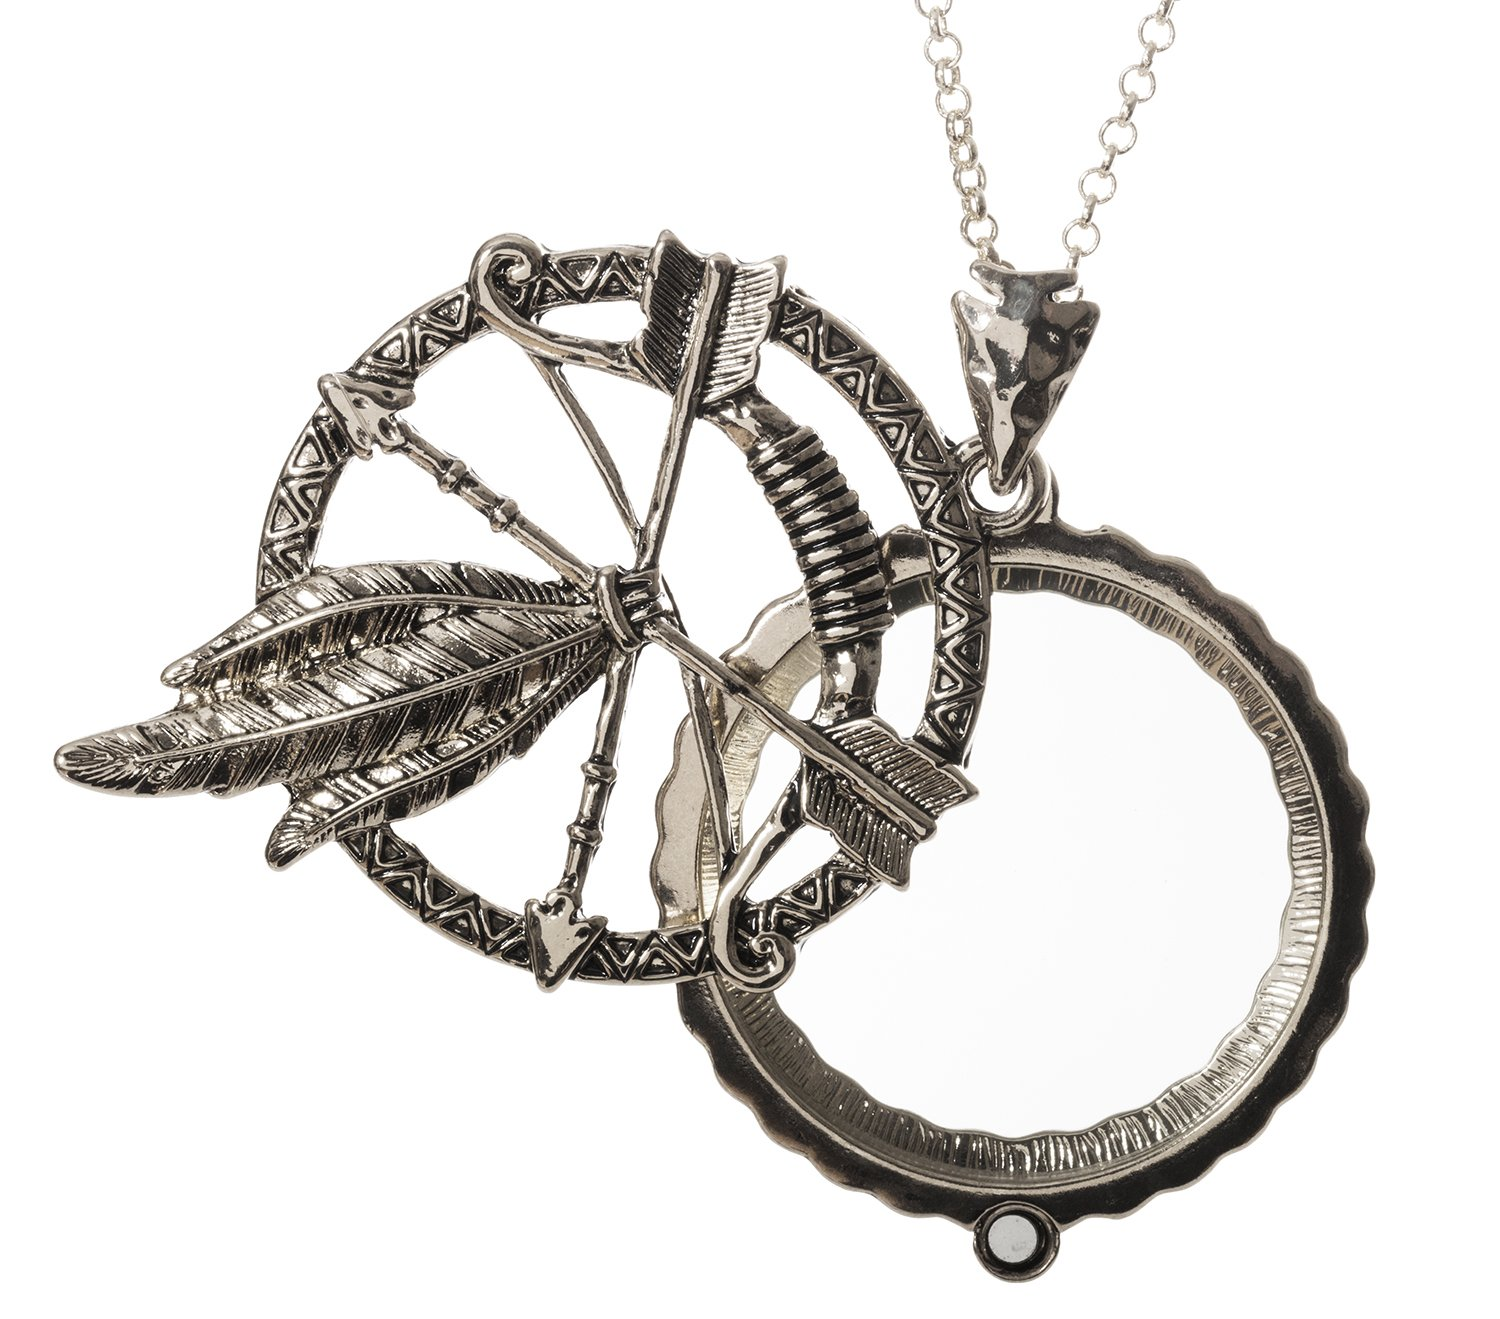 Arrow Feather 4x Magnifier Magnifying Glass Sliding Top Magnet Pendant Necklace, 30'' (Silver Tone)